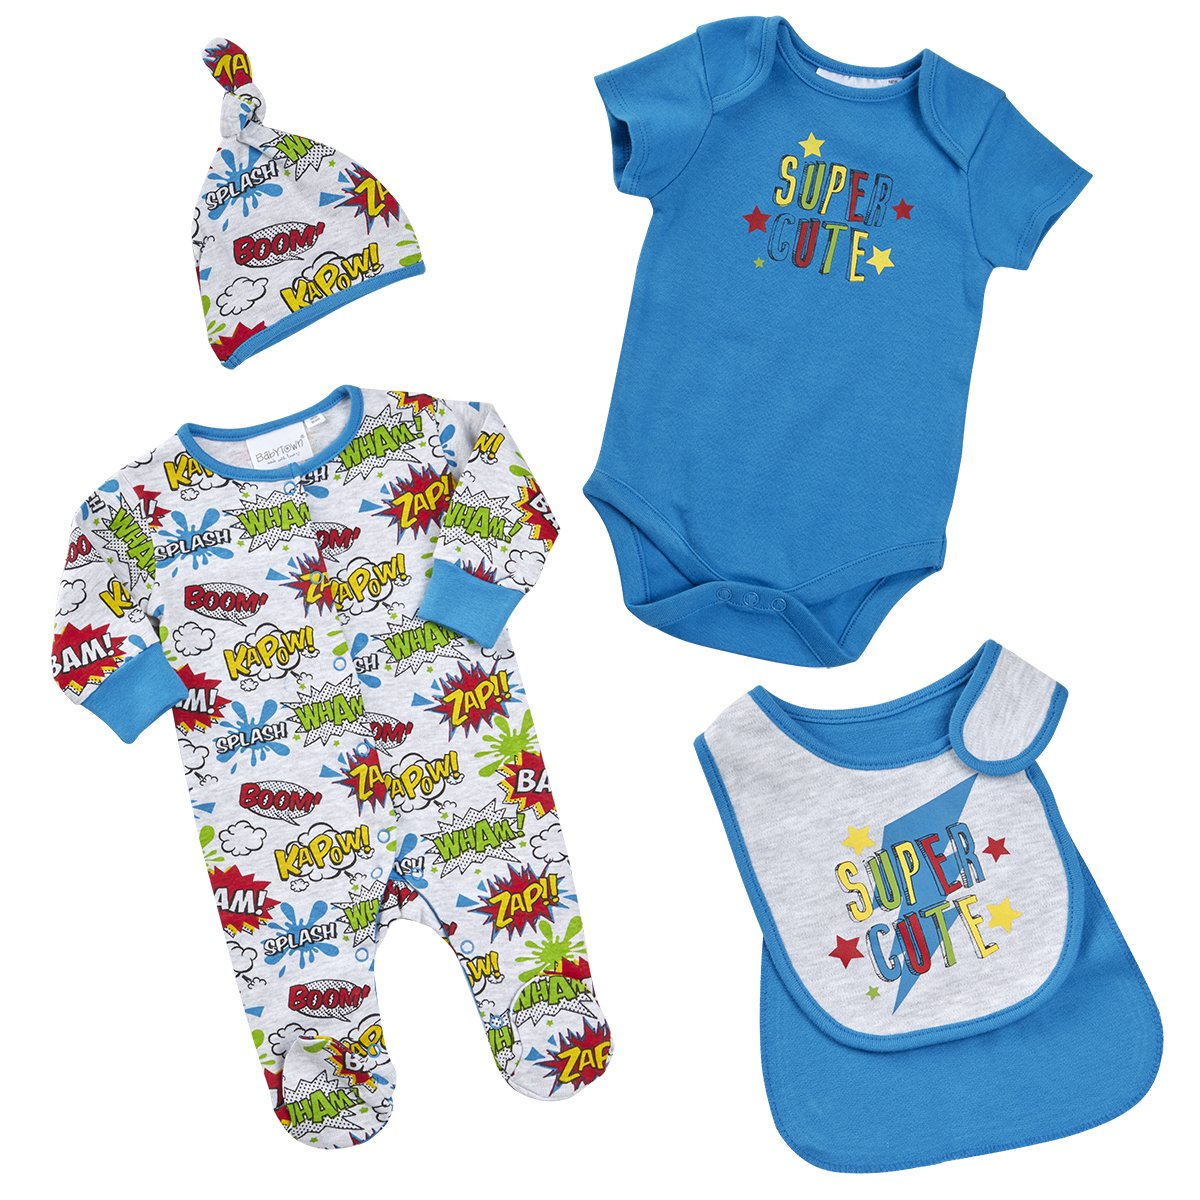 BABYTOWN Baby Boy Sleepsuit Set Superhero Comic 4 Piece Newborn to 9-12 months